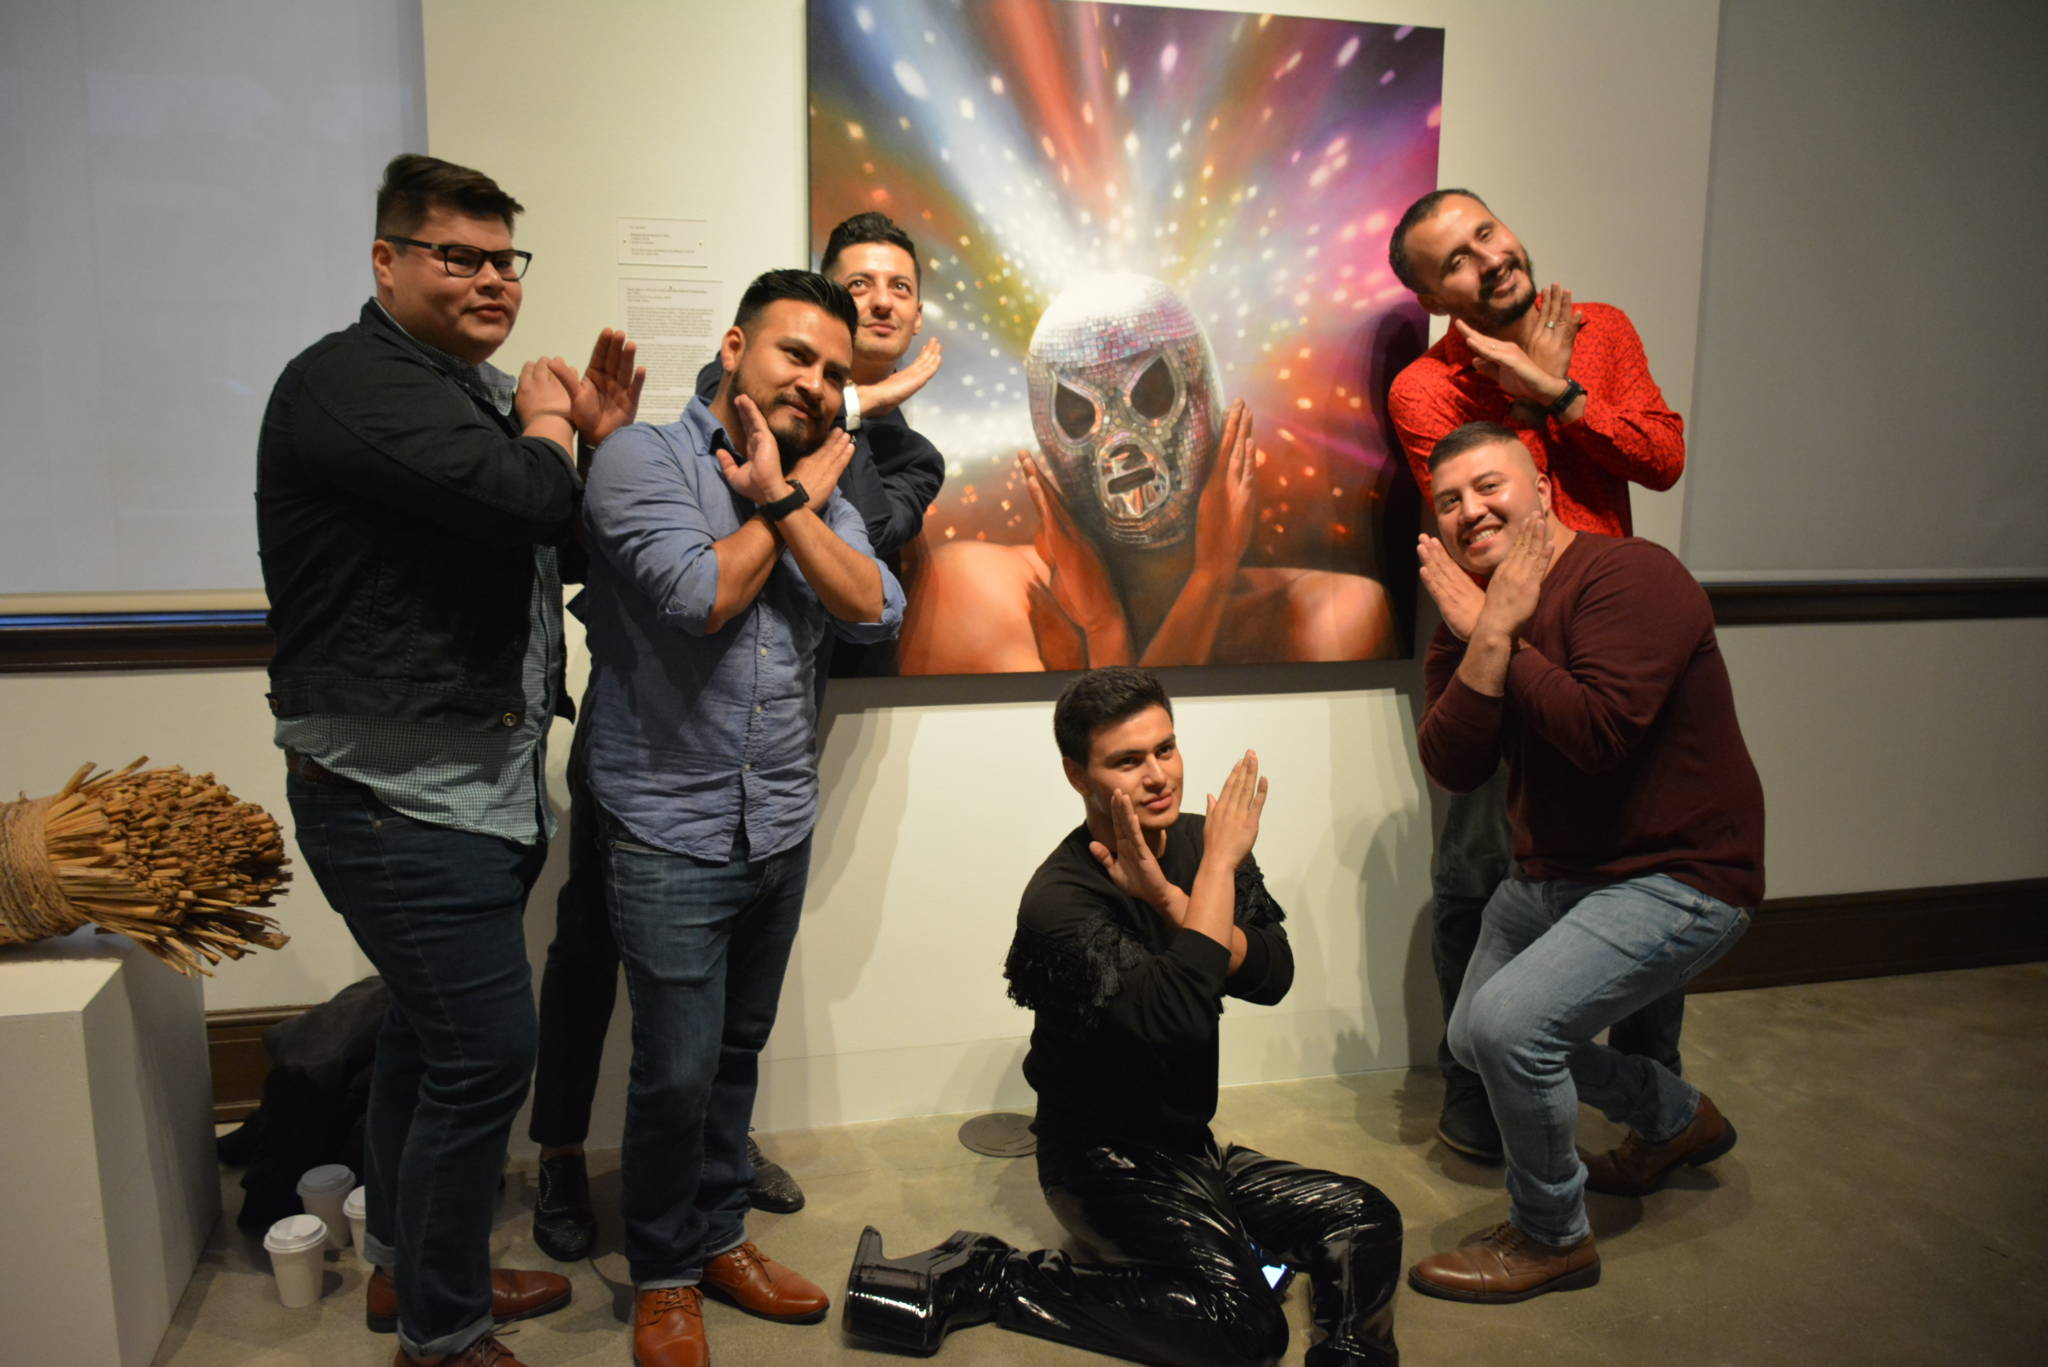 Orlando de la Garza with his painting and friends at the SFAC gallery.